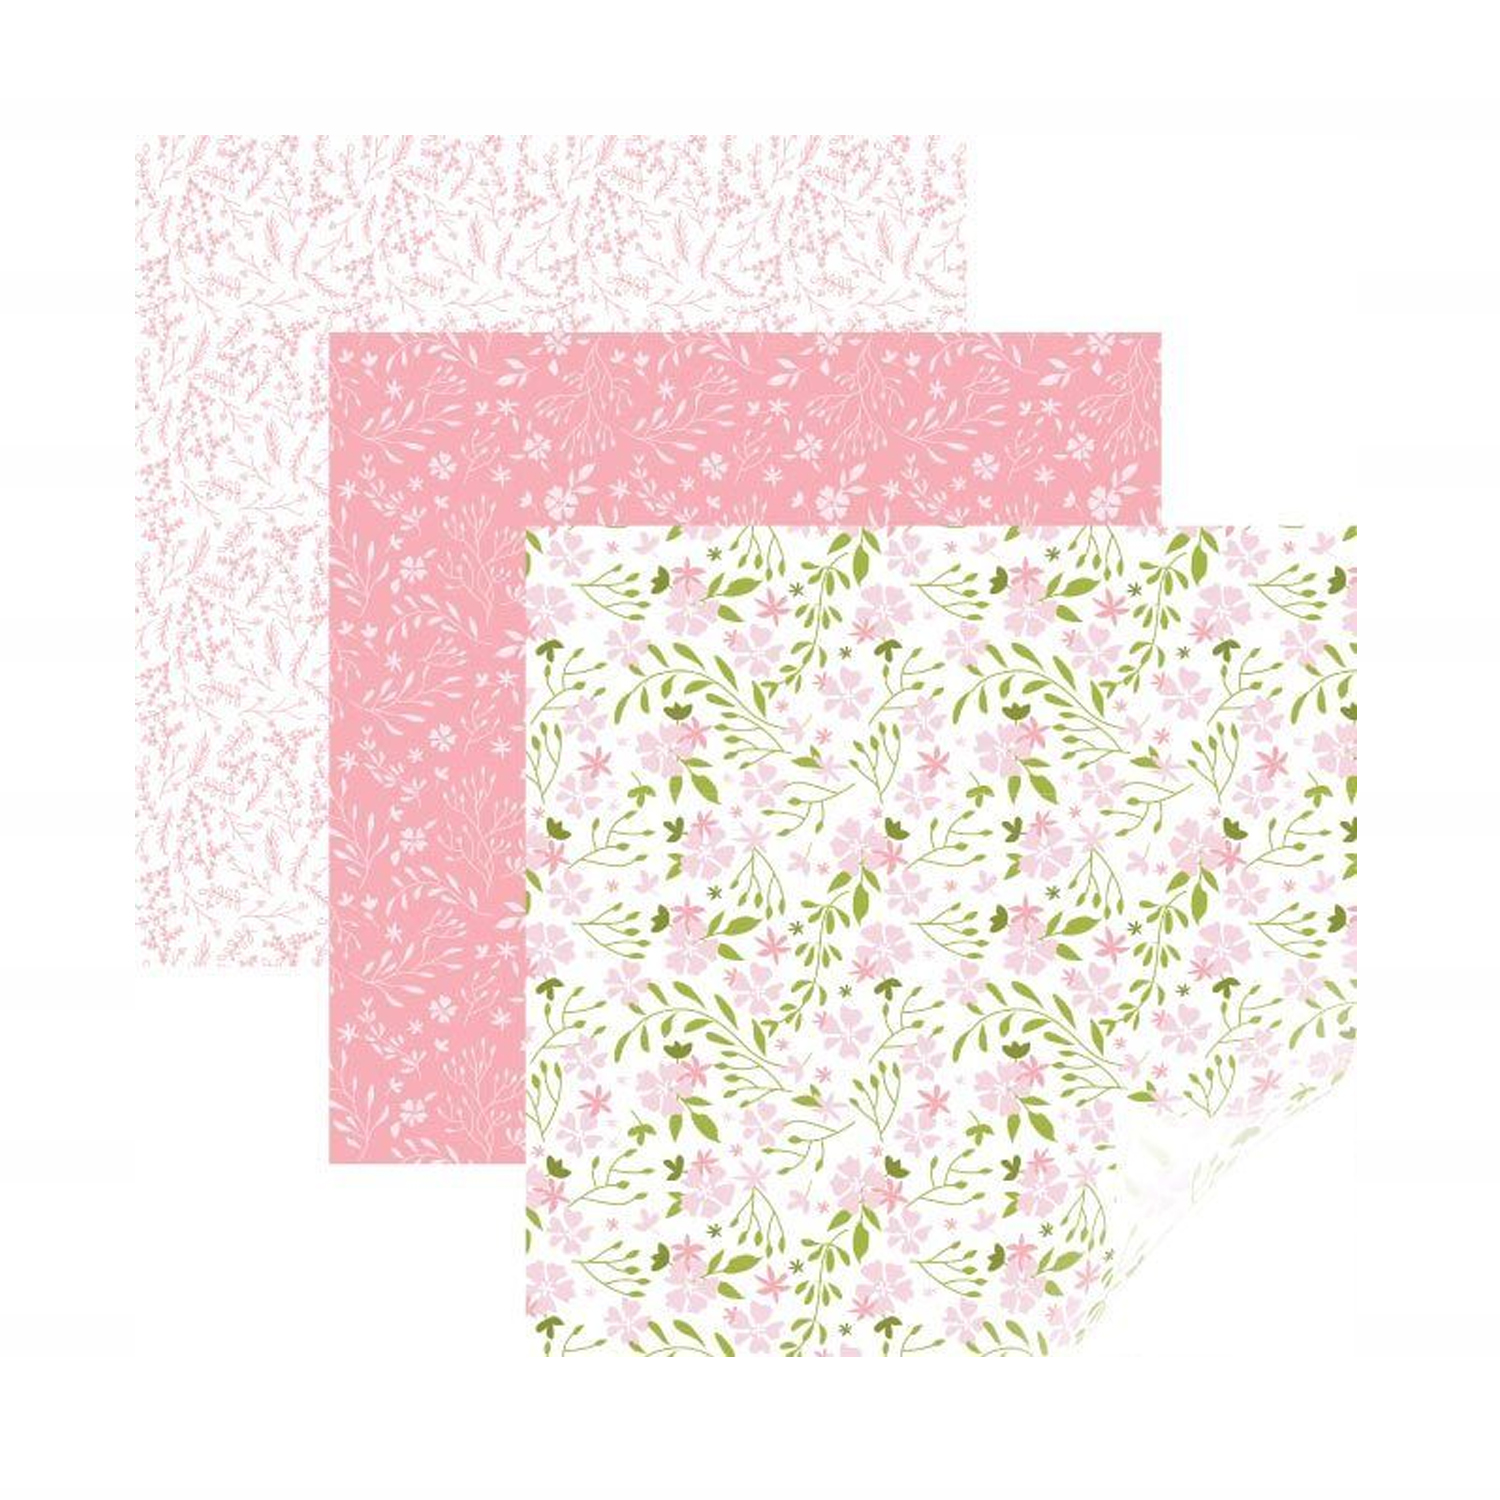 Cricut - StrongBond - Patterned Iron-On -In Bloom Pink Sampler